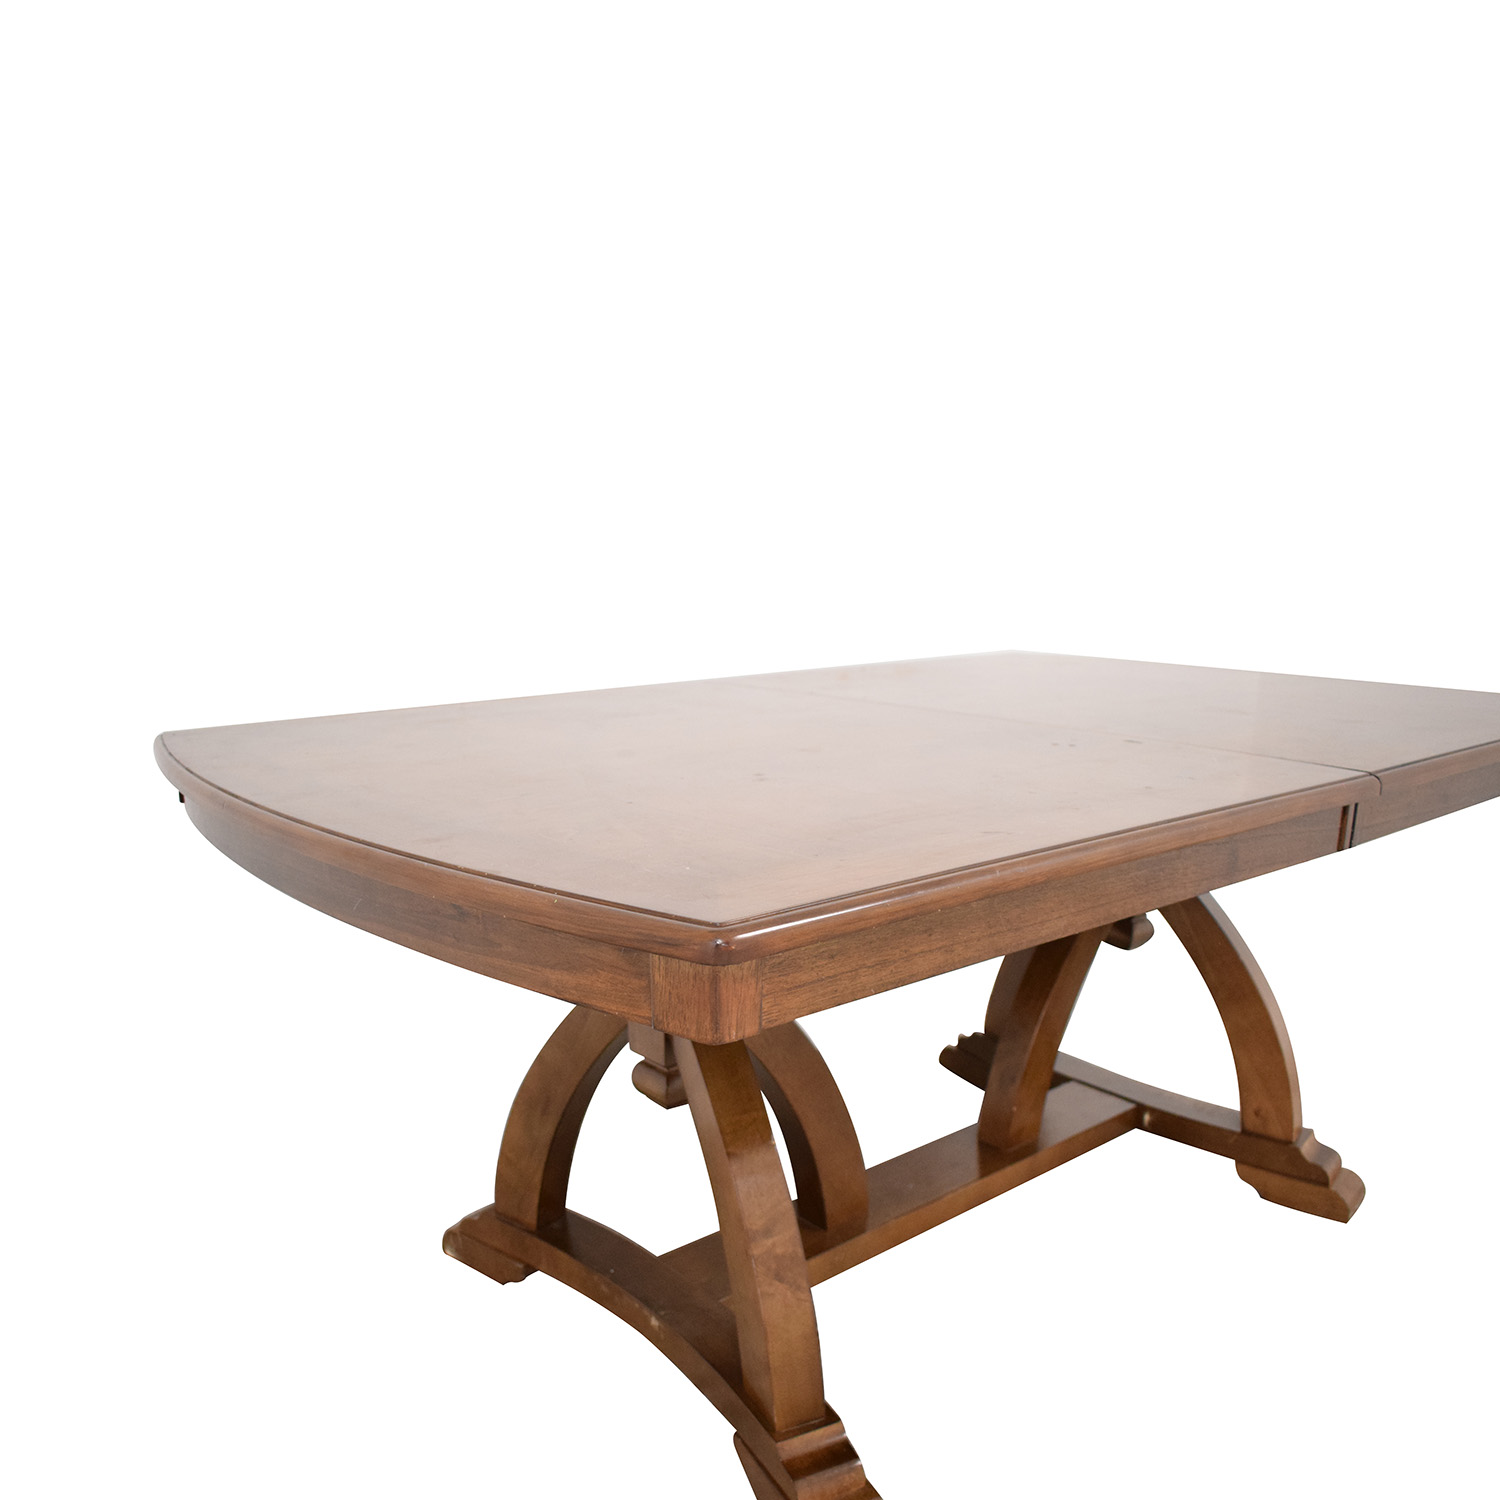 Raymour & Flanigan Raymour & Flanigan Wood Expandable Dining Table Dinner Tables